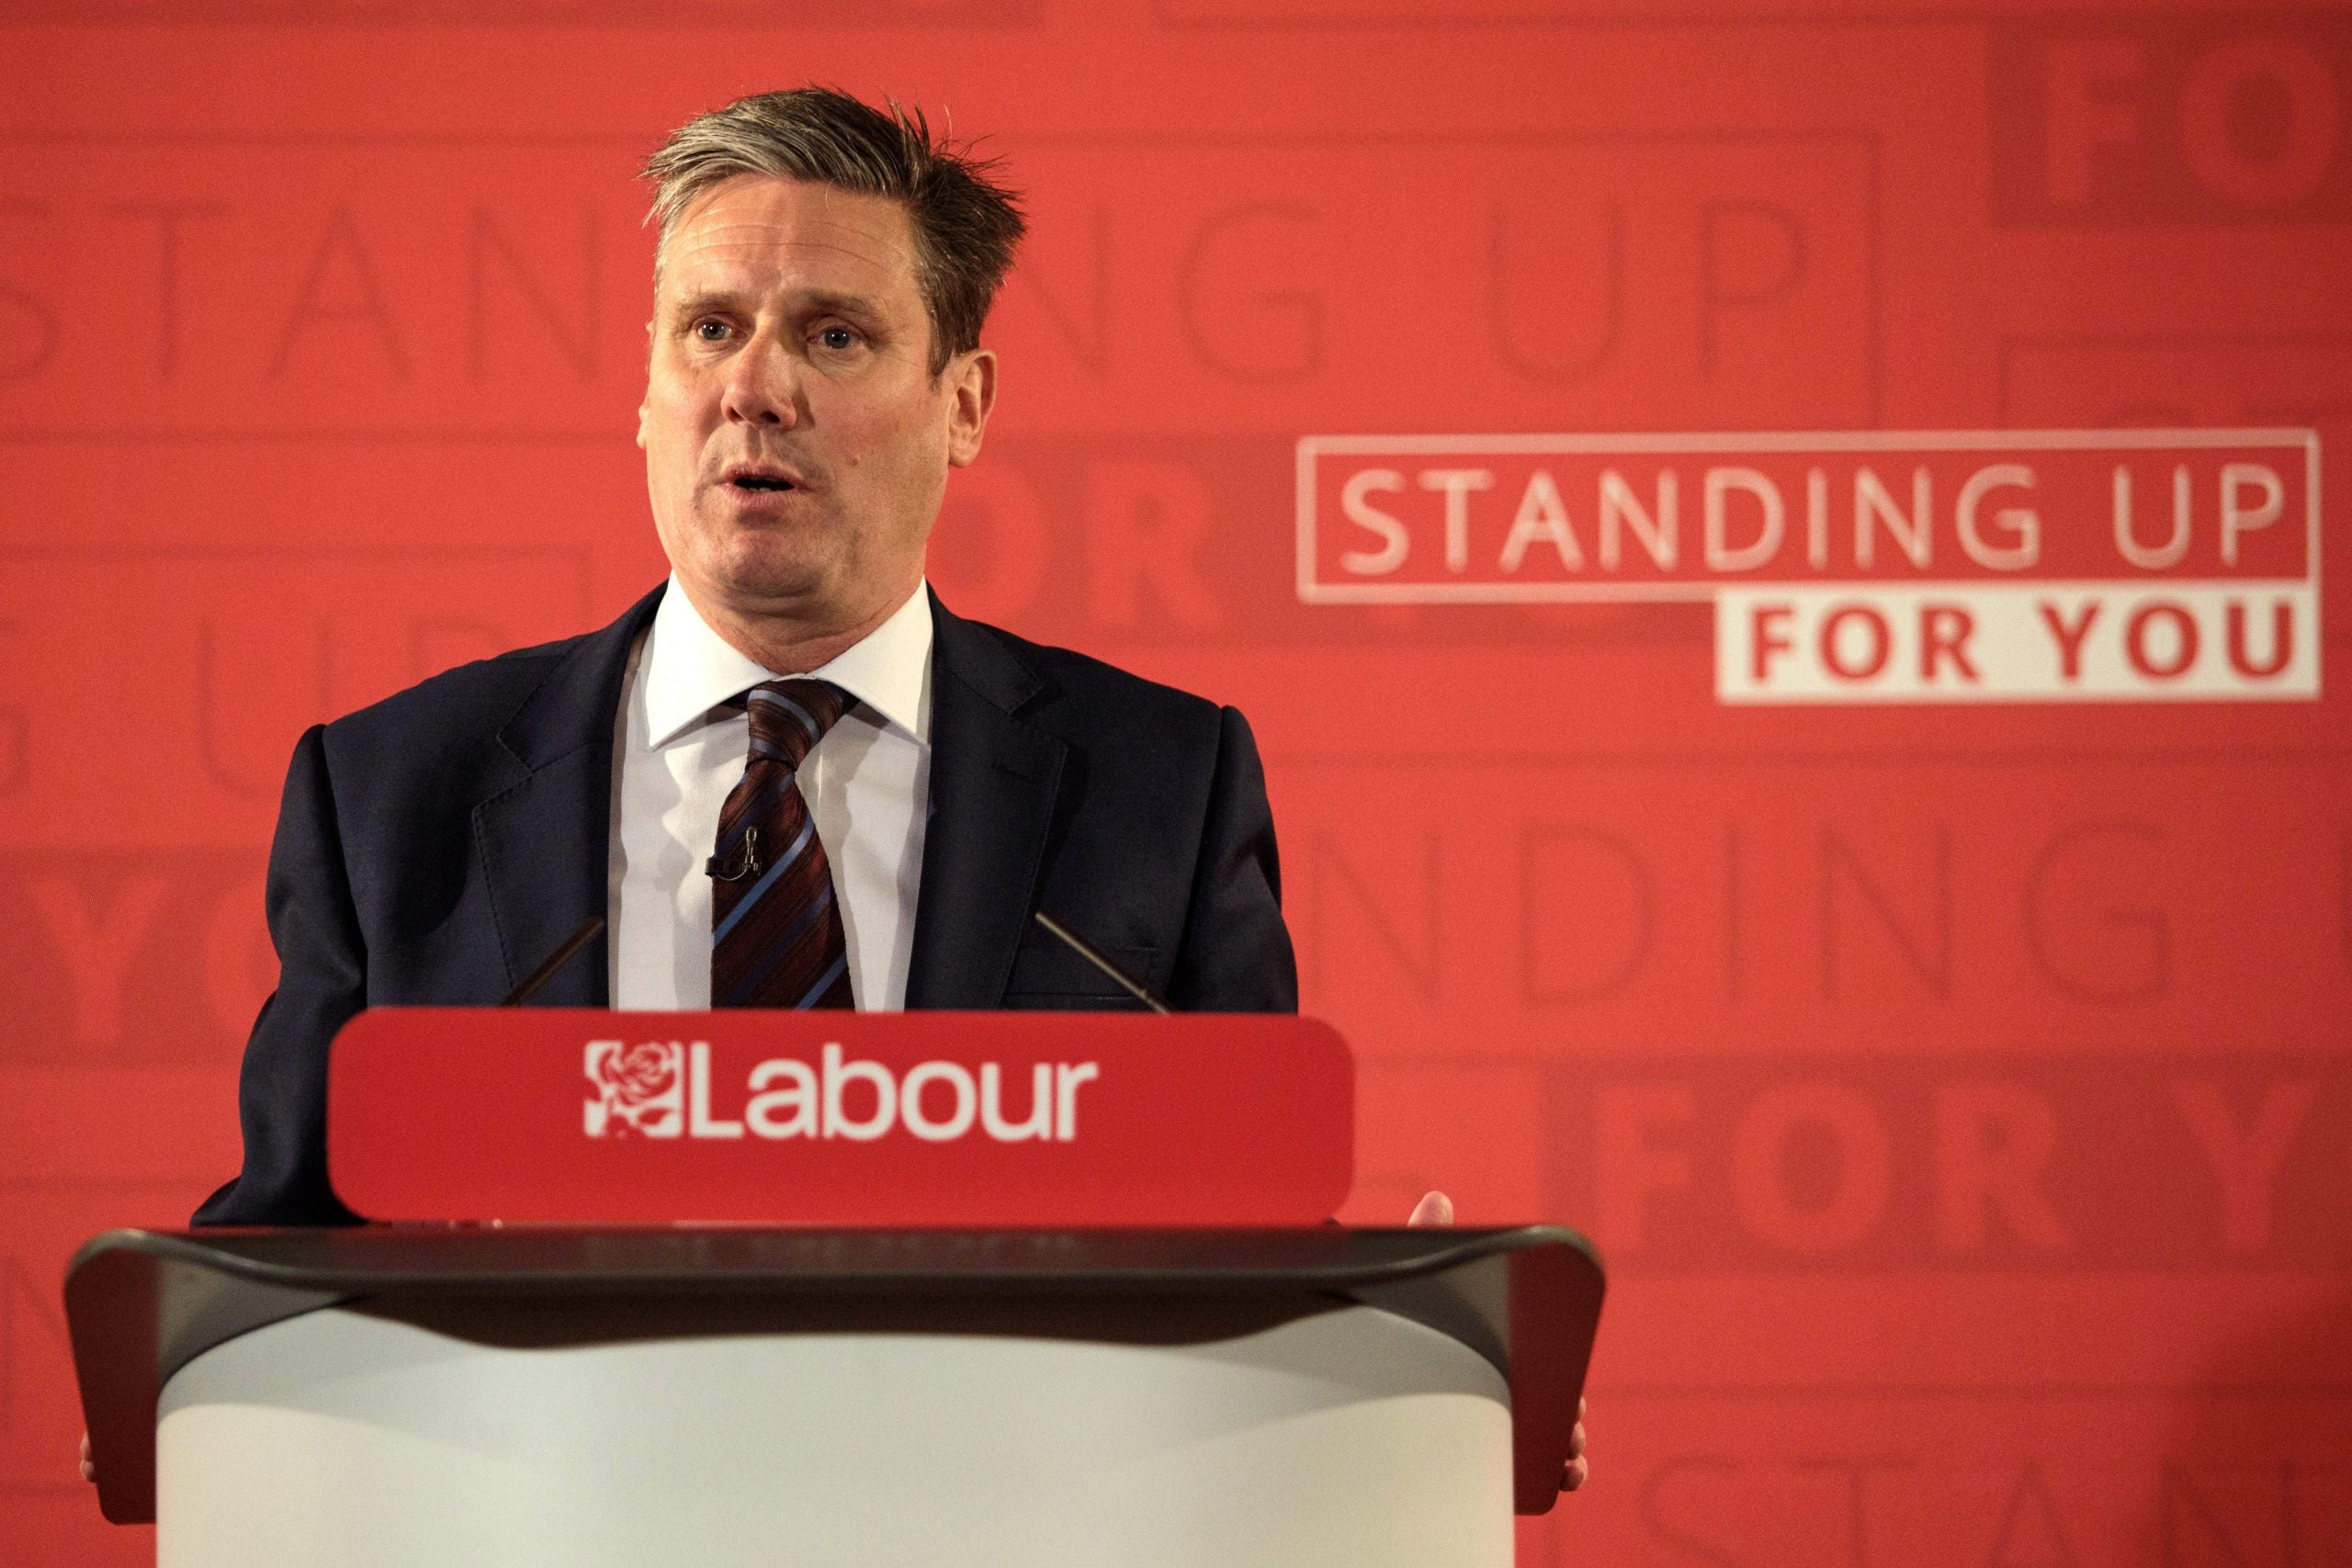 Keir Starmer: price of good Brexit deal is shared institutions